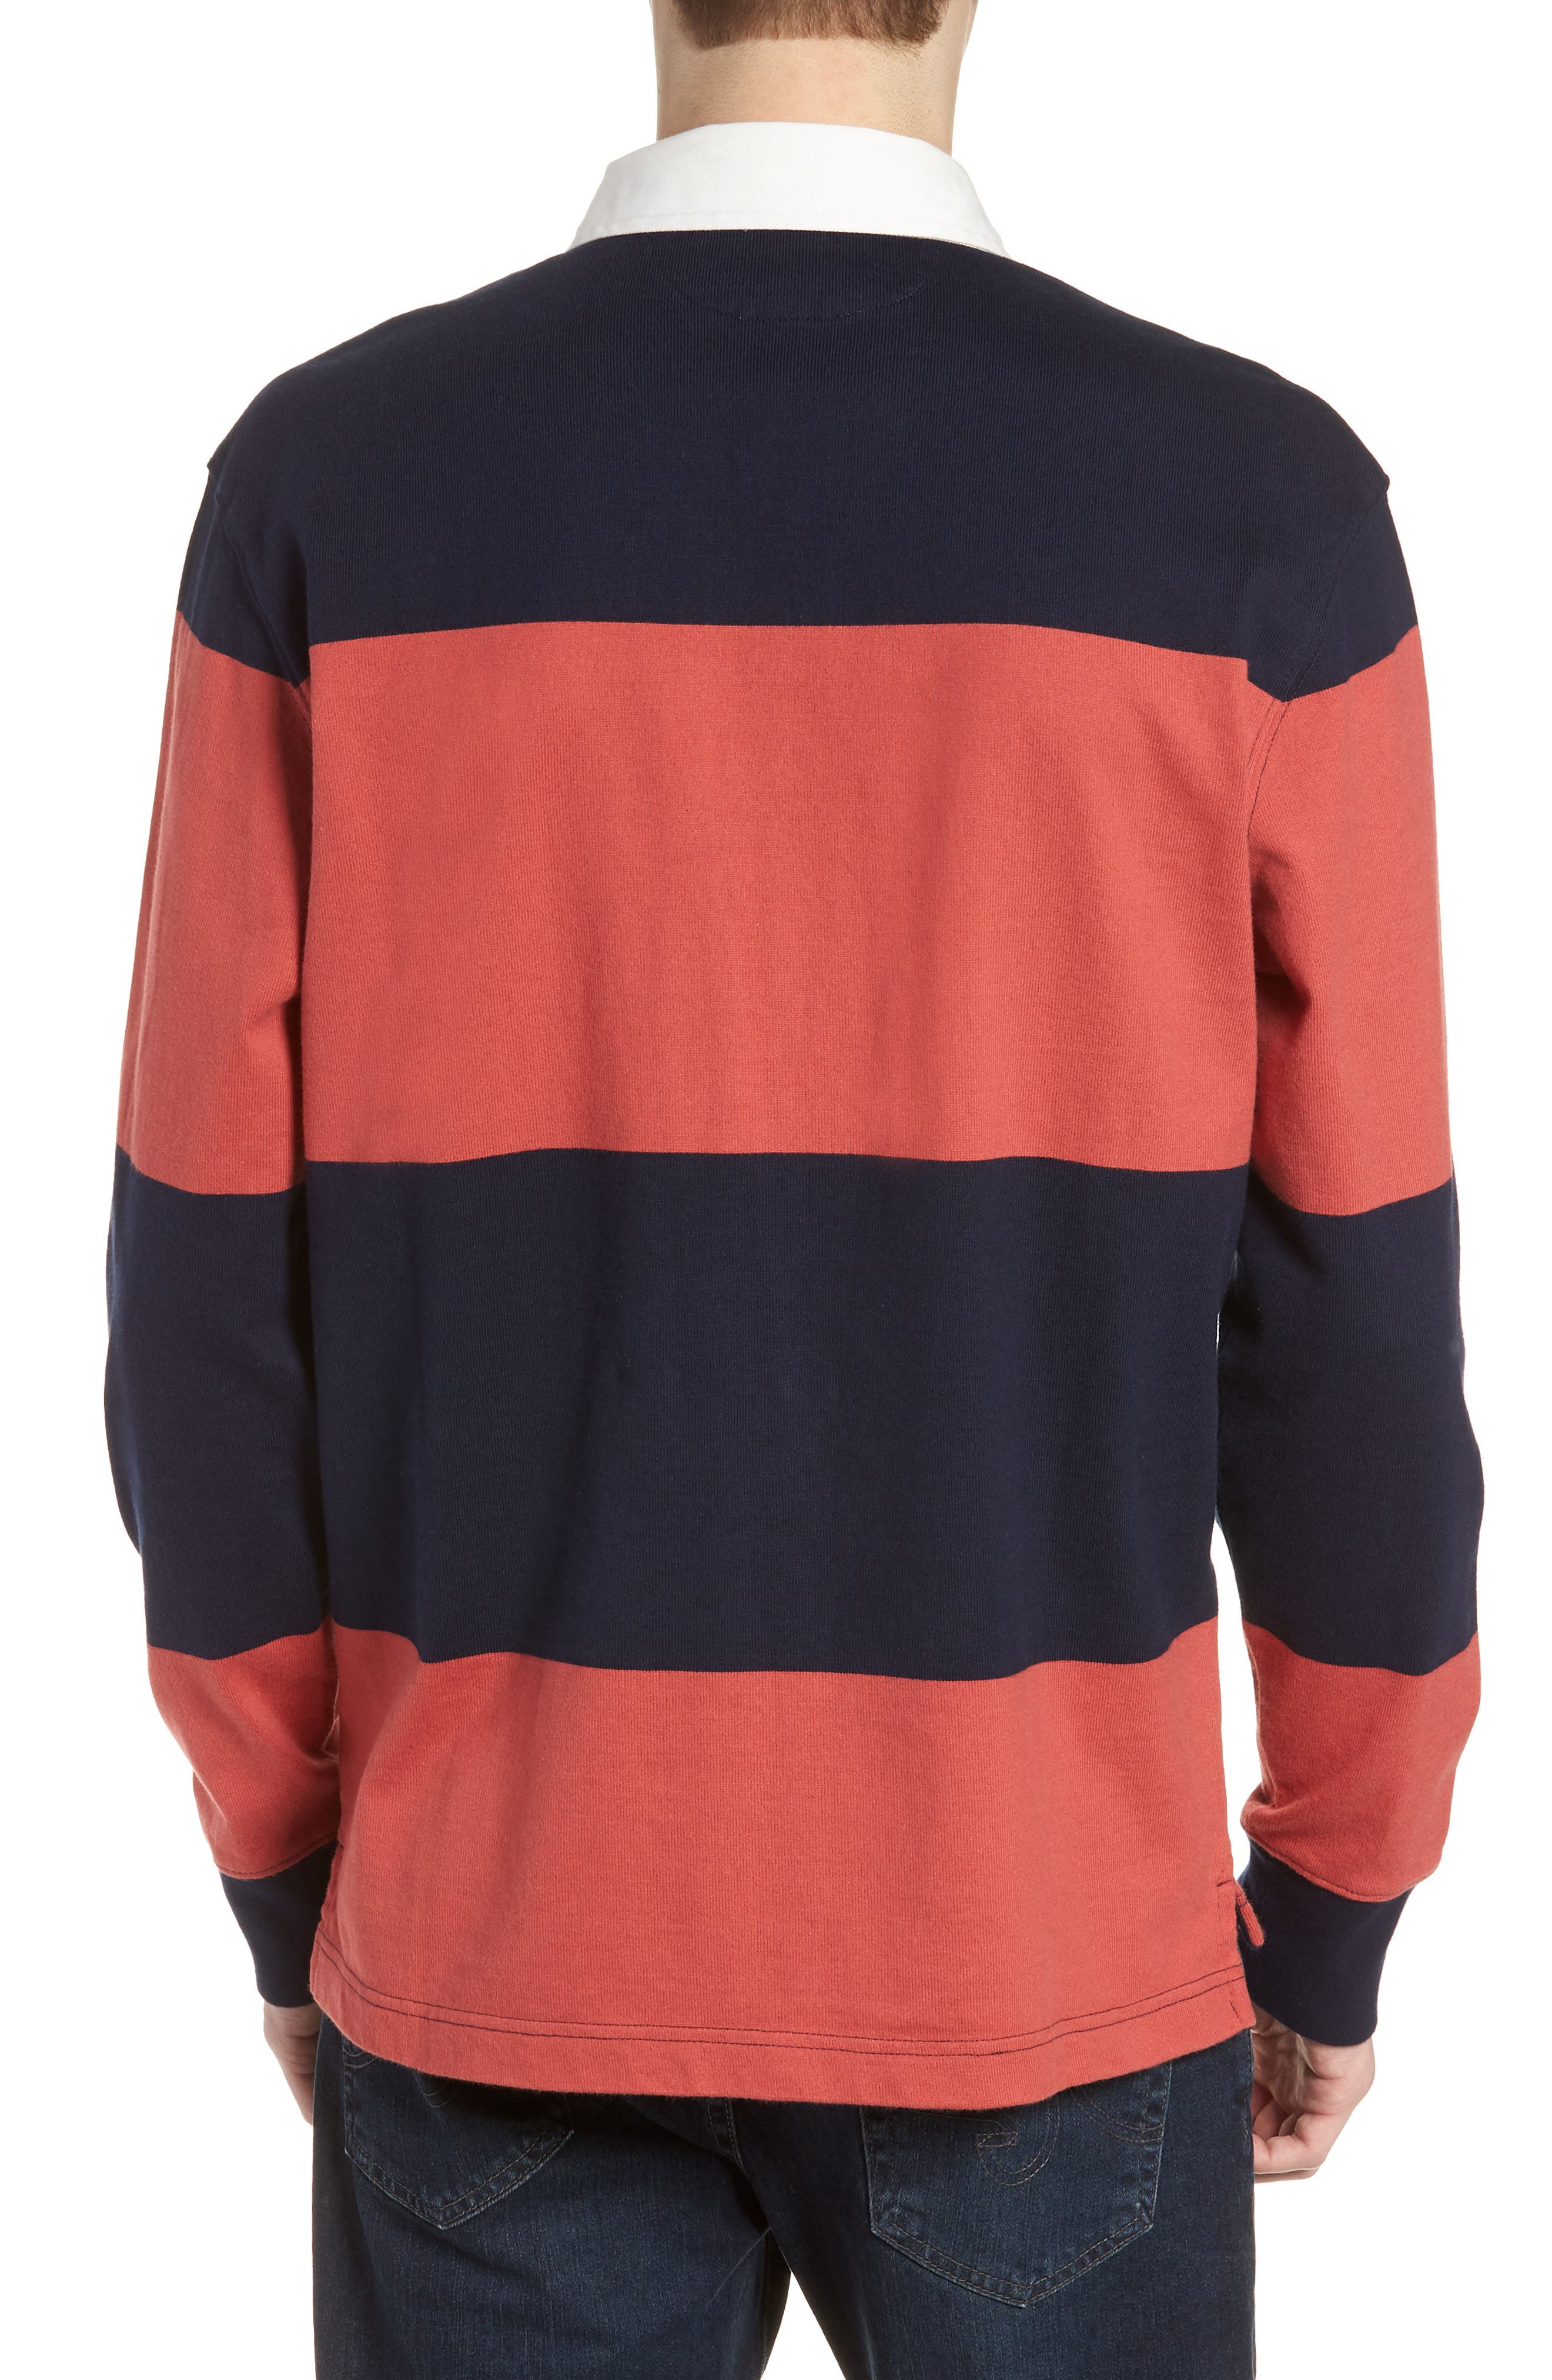 1984 Stripe Rugby Shirt,                             Alternate thumbnail 2, color,                             600